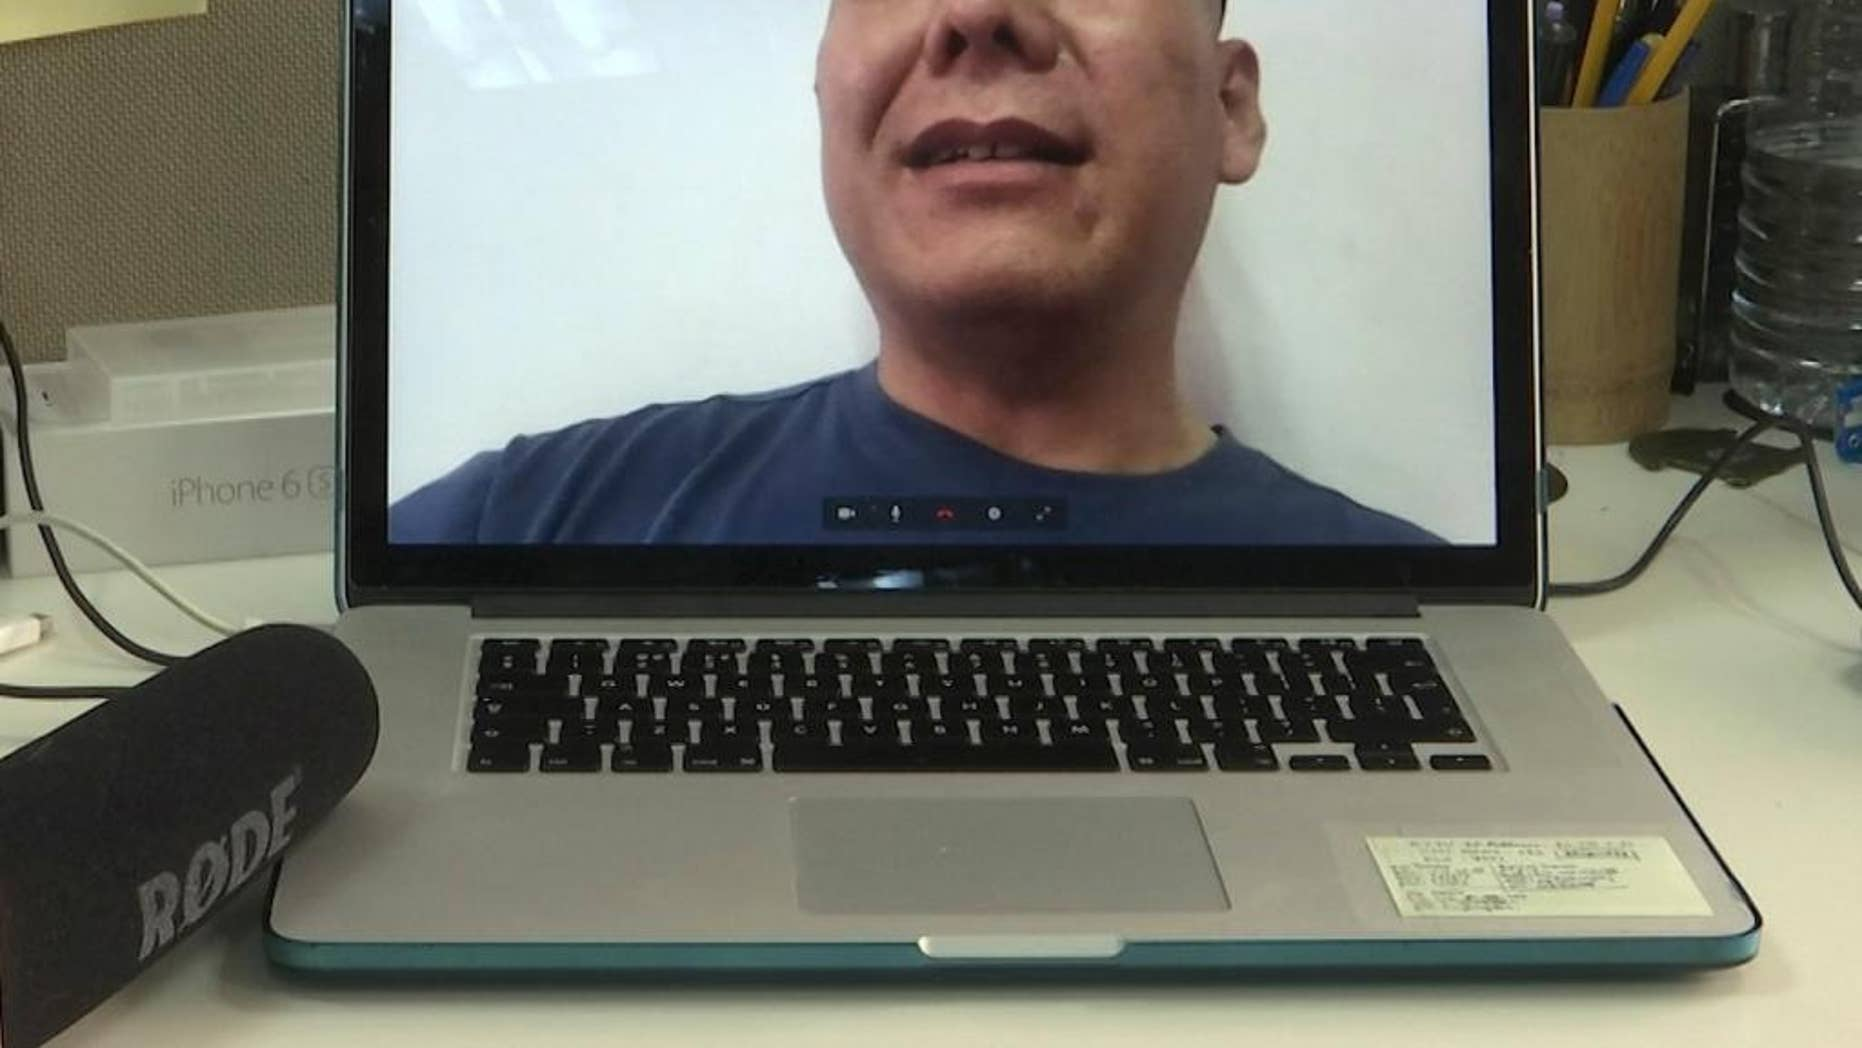 Chinese dissident Zhang Xiangzhong is seen on a computer screen during an interview via videoconference Monday, April 17, 2017, in Taipei, Taiwan. Zhang, who abandoned his tour group while in Taiwan, said he will apply for political asylum on Tuesday in hopes of staying on the self-governing island to promote democracy on the mainland. (AP Photo/Johnson Lai)